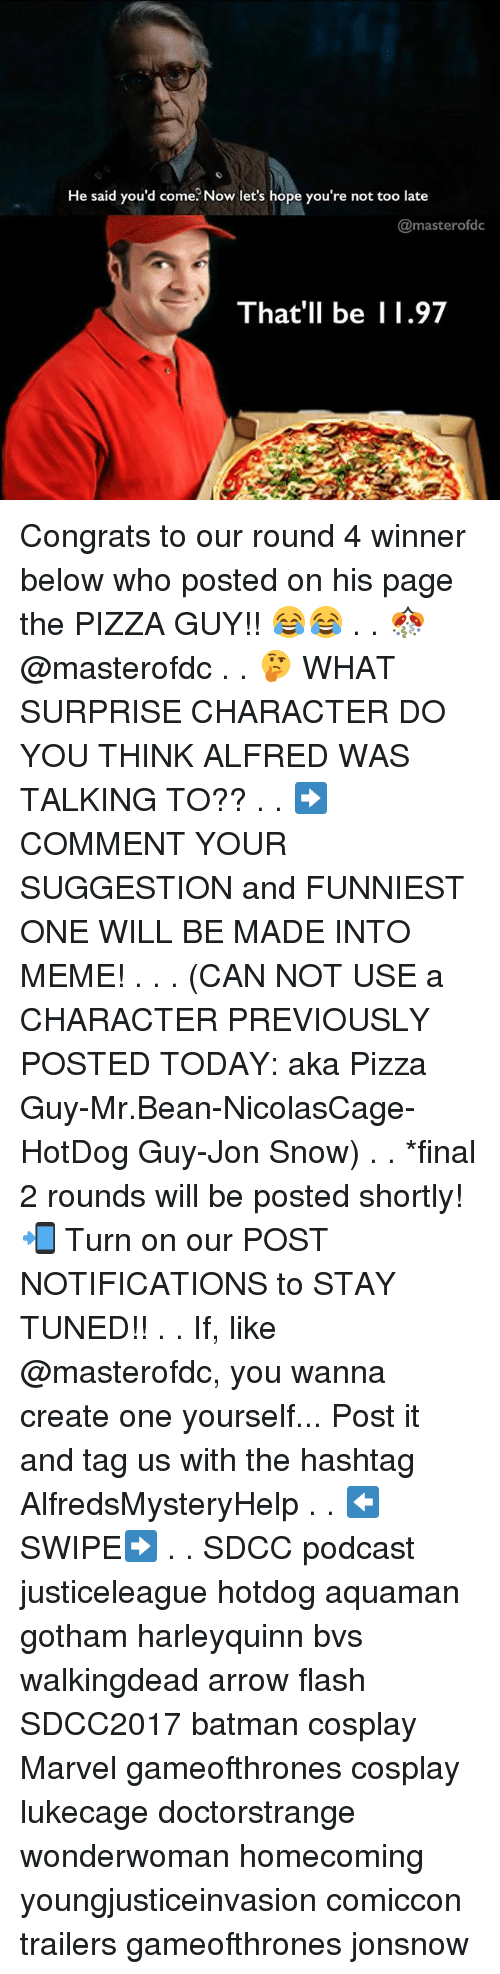 Batman, Finals, and Meme: He said you'd come Now let's hope you're not too late  @masterofdc  That'll be 1.97 Congrats to our round 4 winner below who posted on his page the PIZZA GUY!! 😂😂 . . 🎊 @masterofdc . . 🤔 WHAT SURPRISE CHARACTER DO YOU THINK ALFRED WAS TALKING TO?? . . ➡️COMMENT YOUR SUGGESTION and FUNNIEST ONE WILL BE MADE INTO MEME! . . . (CAN NOT USE a CHARACTER PREVIOUSLY POSTED TODAY: aka Pizza Guy-Mr.Bean-NicolasCage-HotDog Guy-Jon Snow) . . *final 2 rounds will be posted shortly! 📲 Turn on our POST NOTIFICATIONS to STAY TUNED!! . . If, like @masterofdc, you wanna create one yourself... Post it and tag us with the hashtag AlfredsMysteryHelp . . ⬅️SWIPE➡️ . . SDCC podcast justiceleague hotdog aquaman gotham harleyquinn bvs walkingdead arrow flash SDCC2017 batman cosplay Marvel gameofthrones cosplay lukecage doctorstrange wonderwoman homecoming youngjusticeinvasion comiccon trailers gameofthrones jonsnow